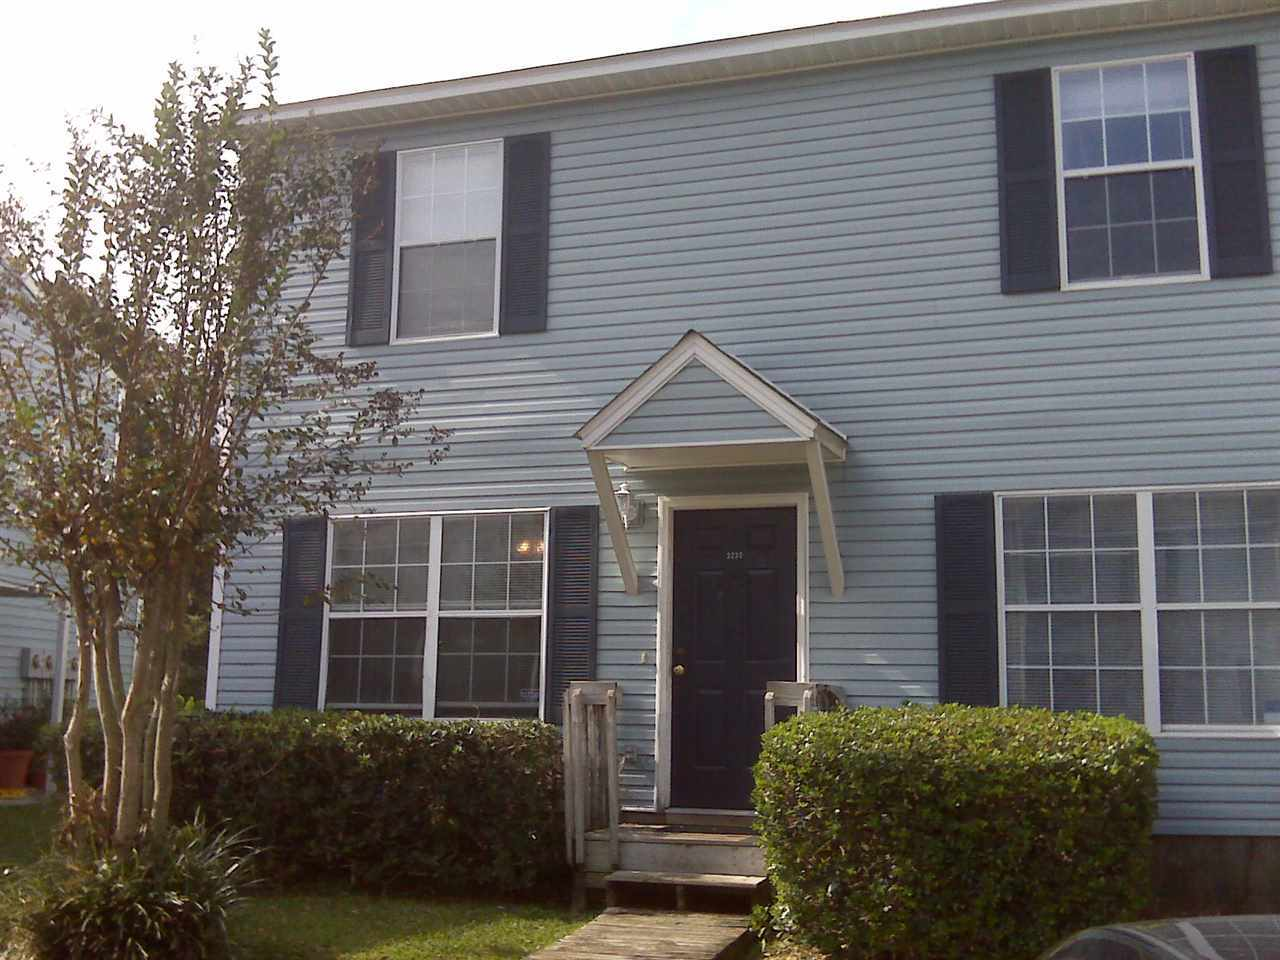 $1,195 - 3Br/3Ba -  for Sale in The Timbers, Tallahassee